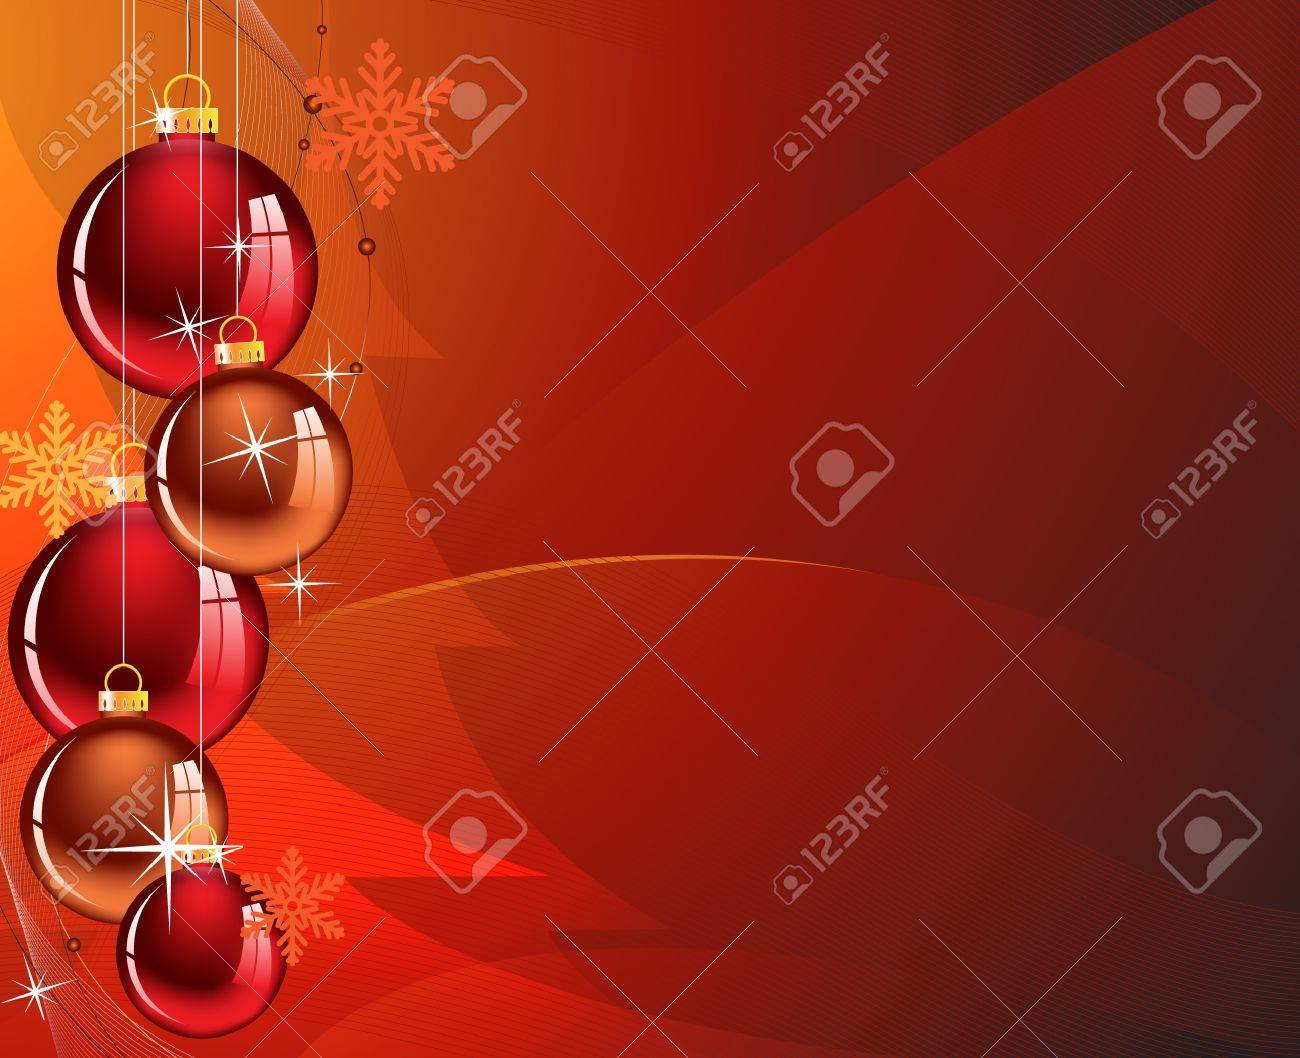 Christmas decorations in an abstract red background - 11528031